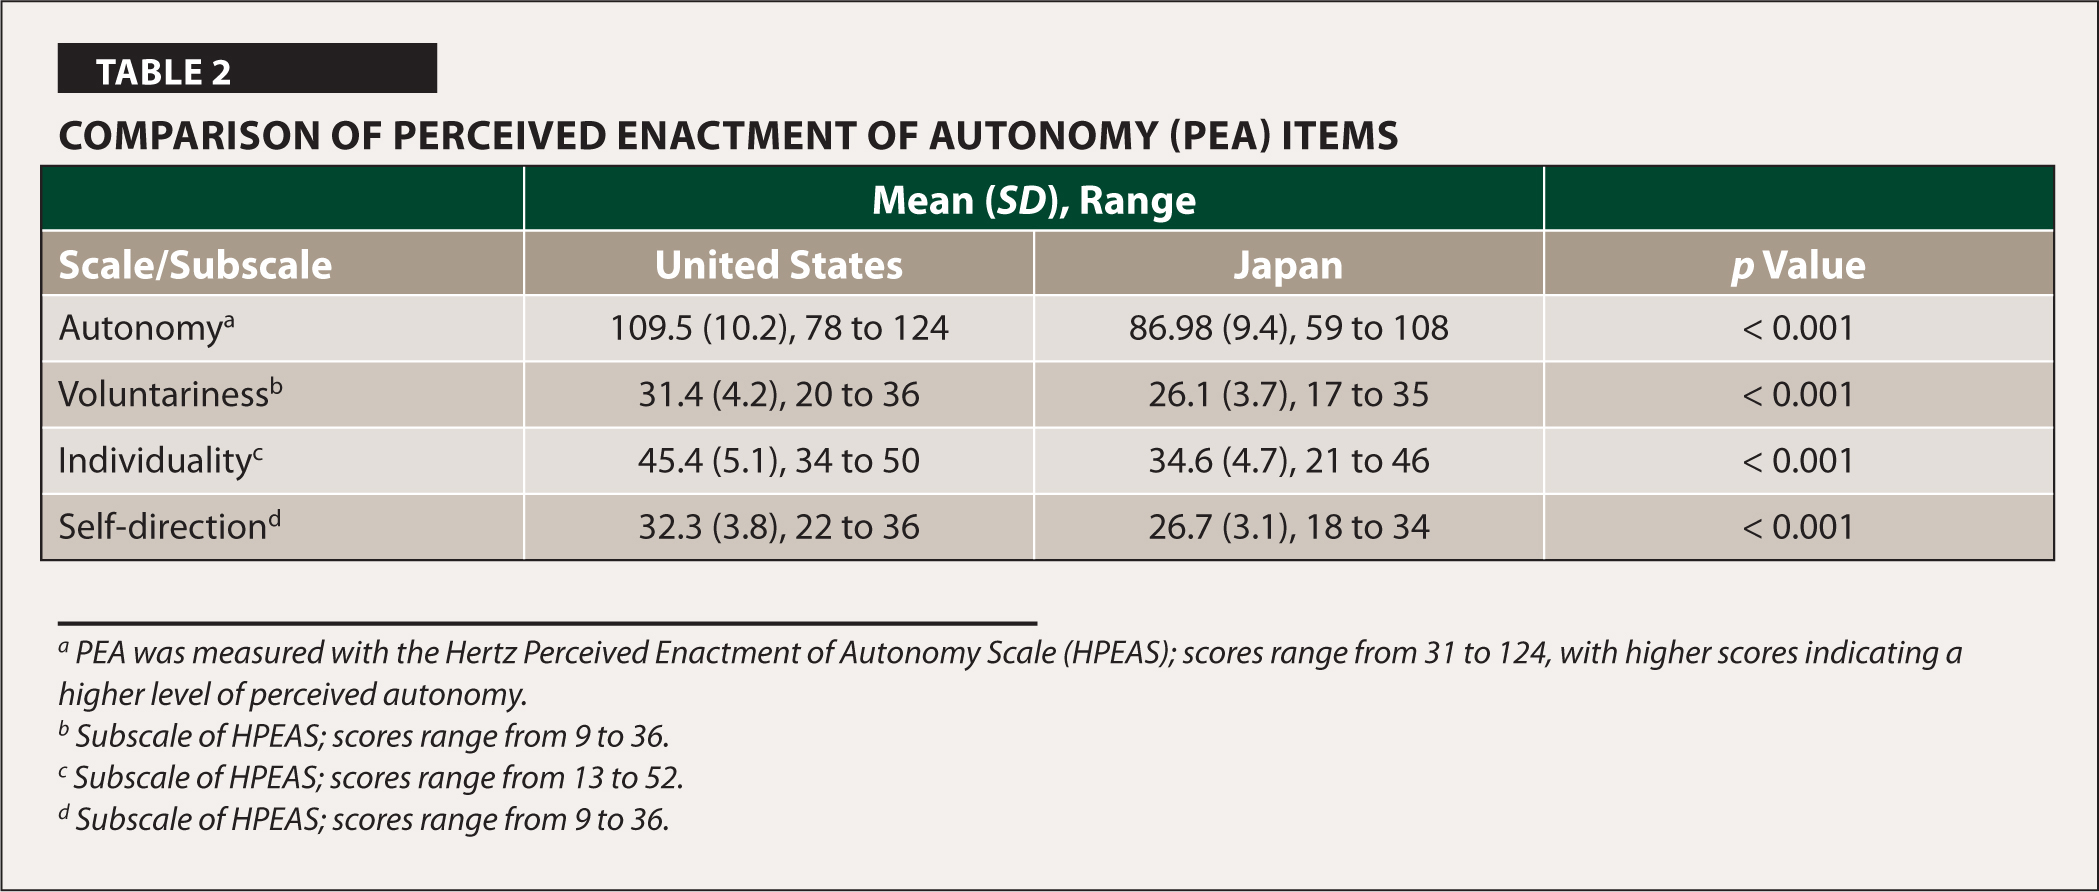 Comparison of Perceived Enactment of Autonomy (PEA) Items